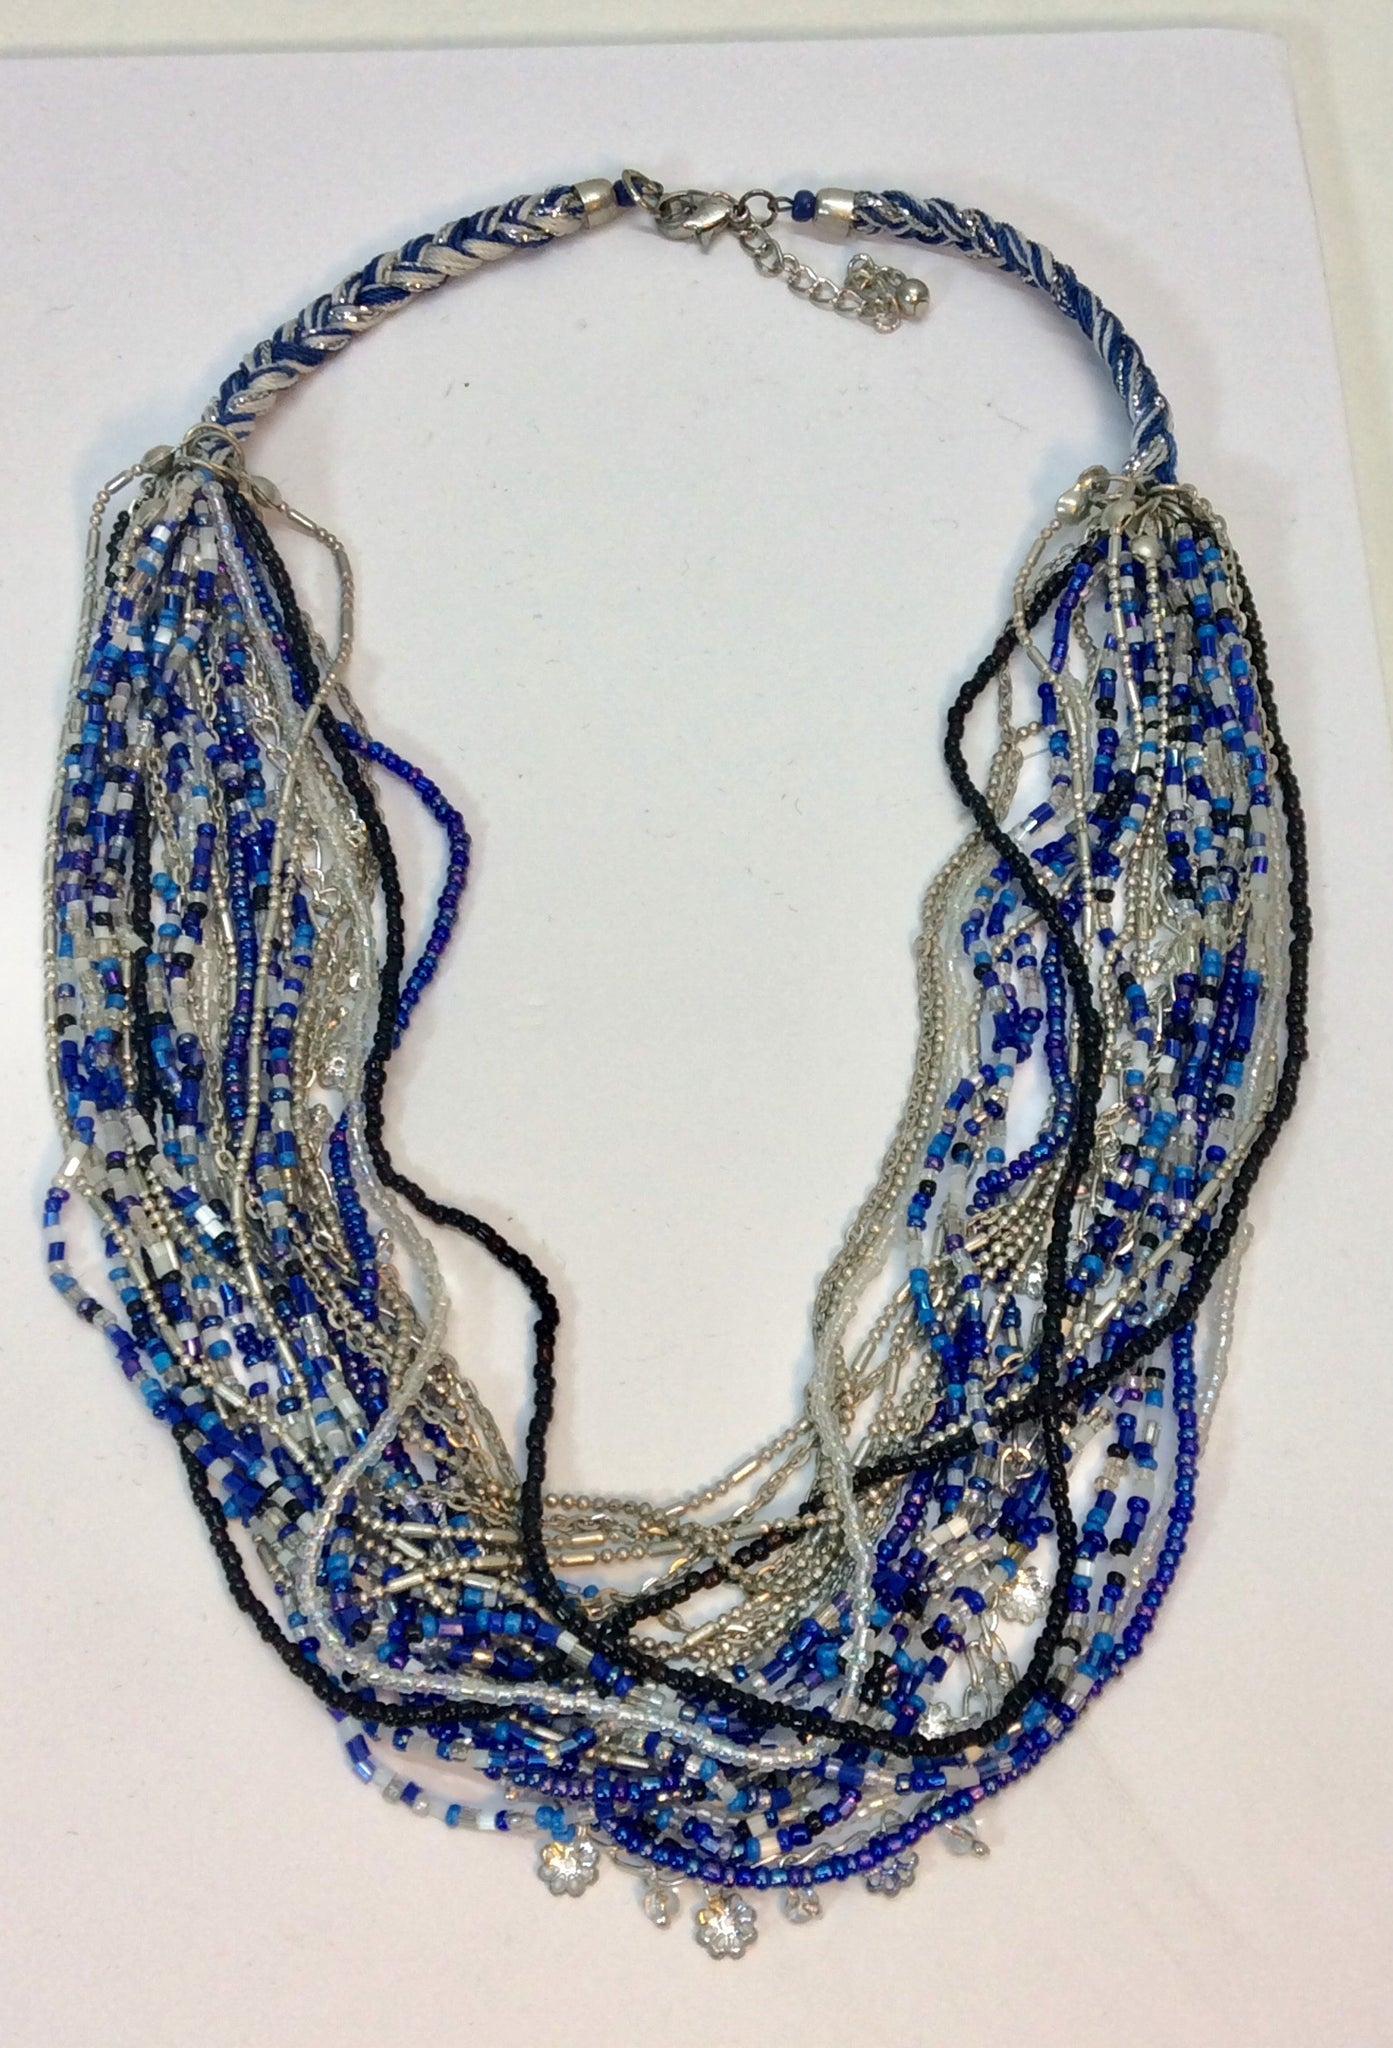 Unusual multi stand.necklace with blue and silver beads